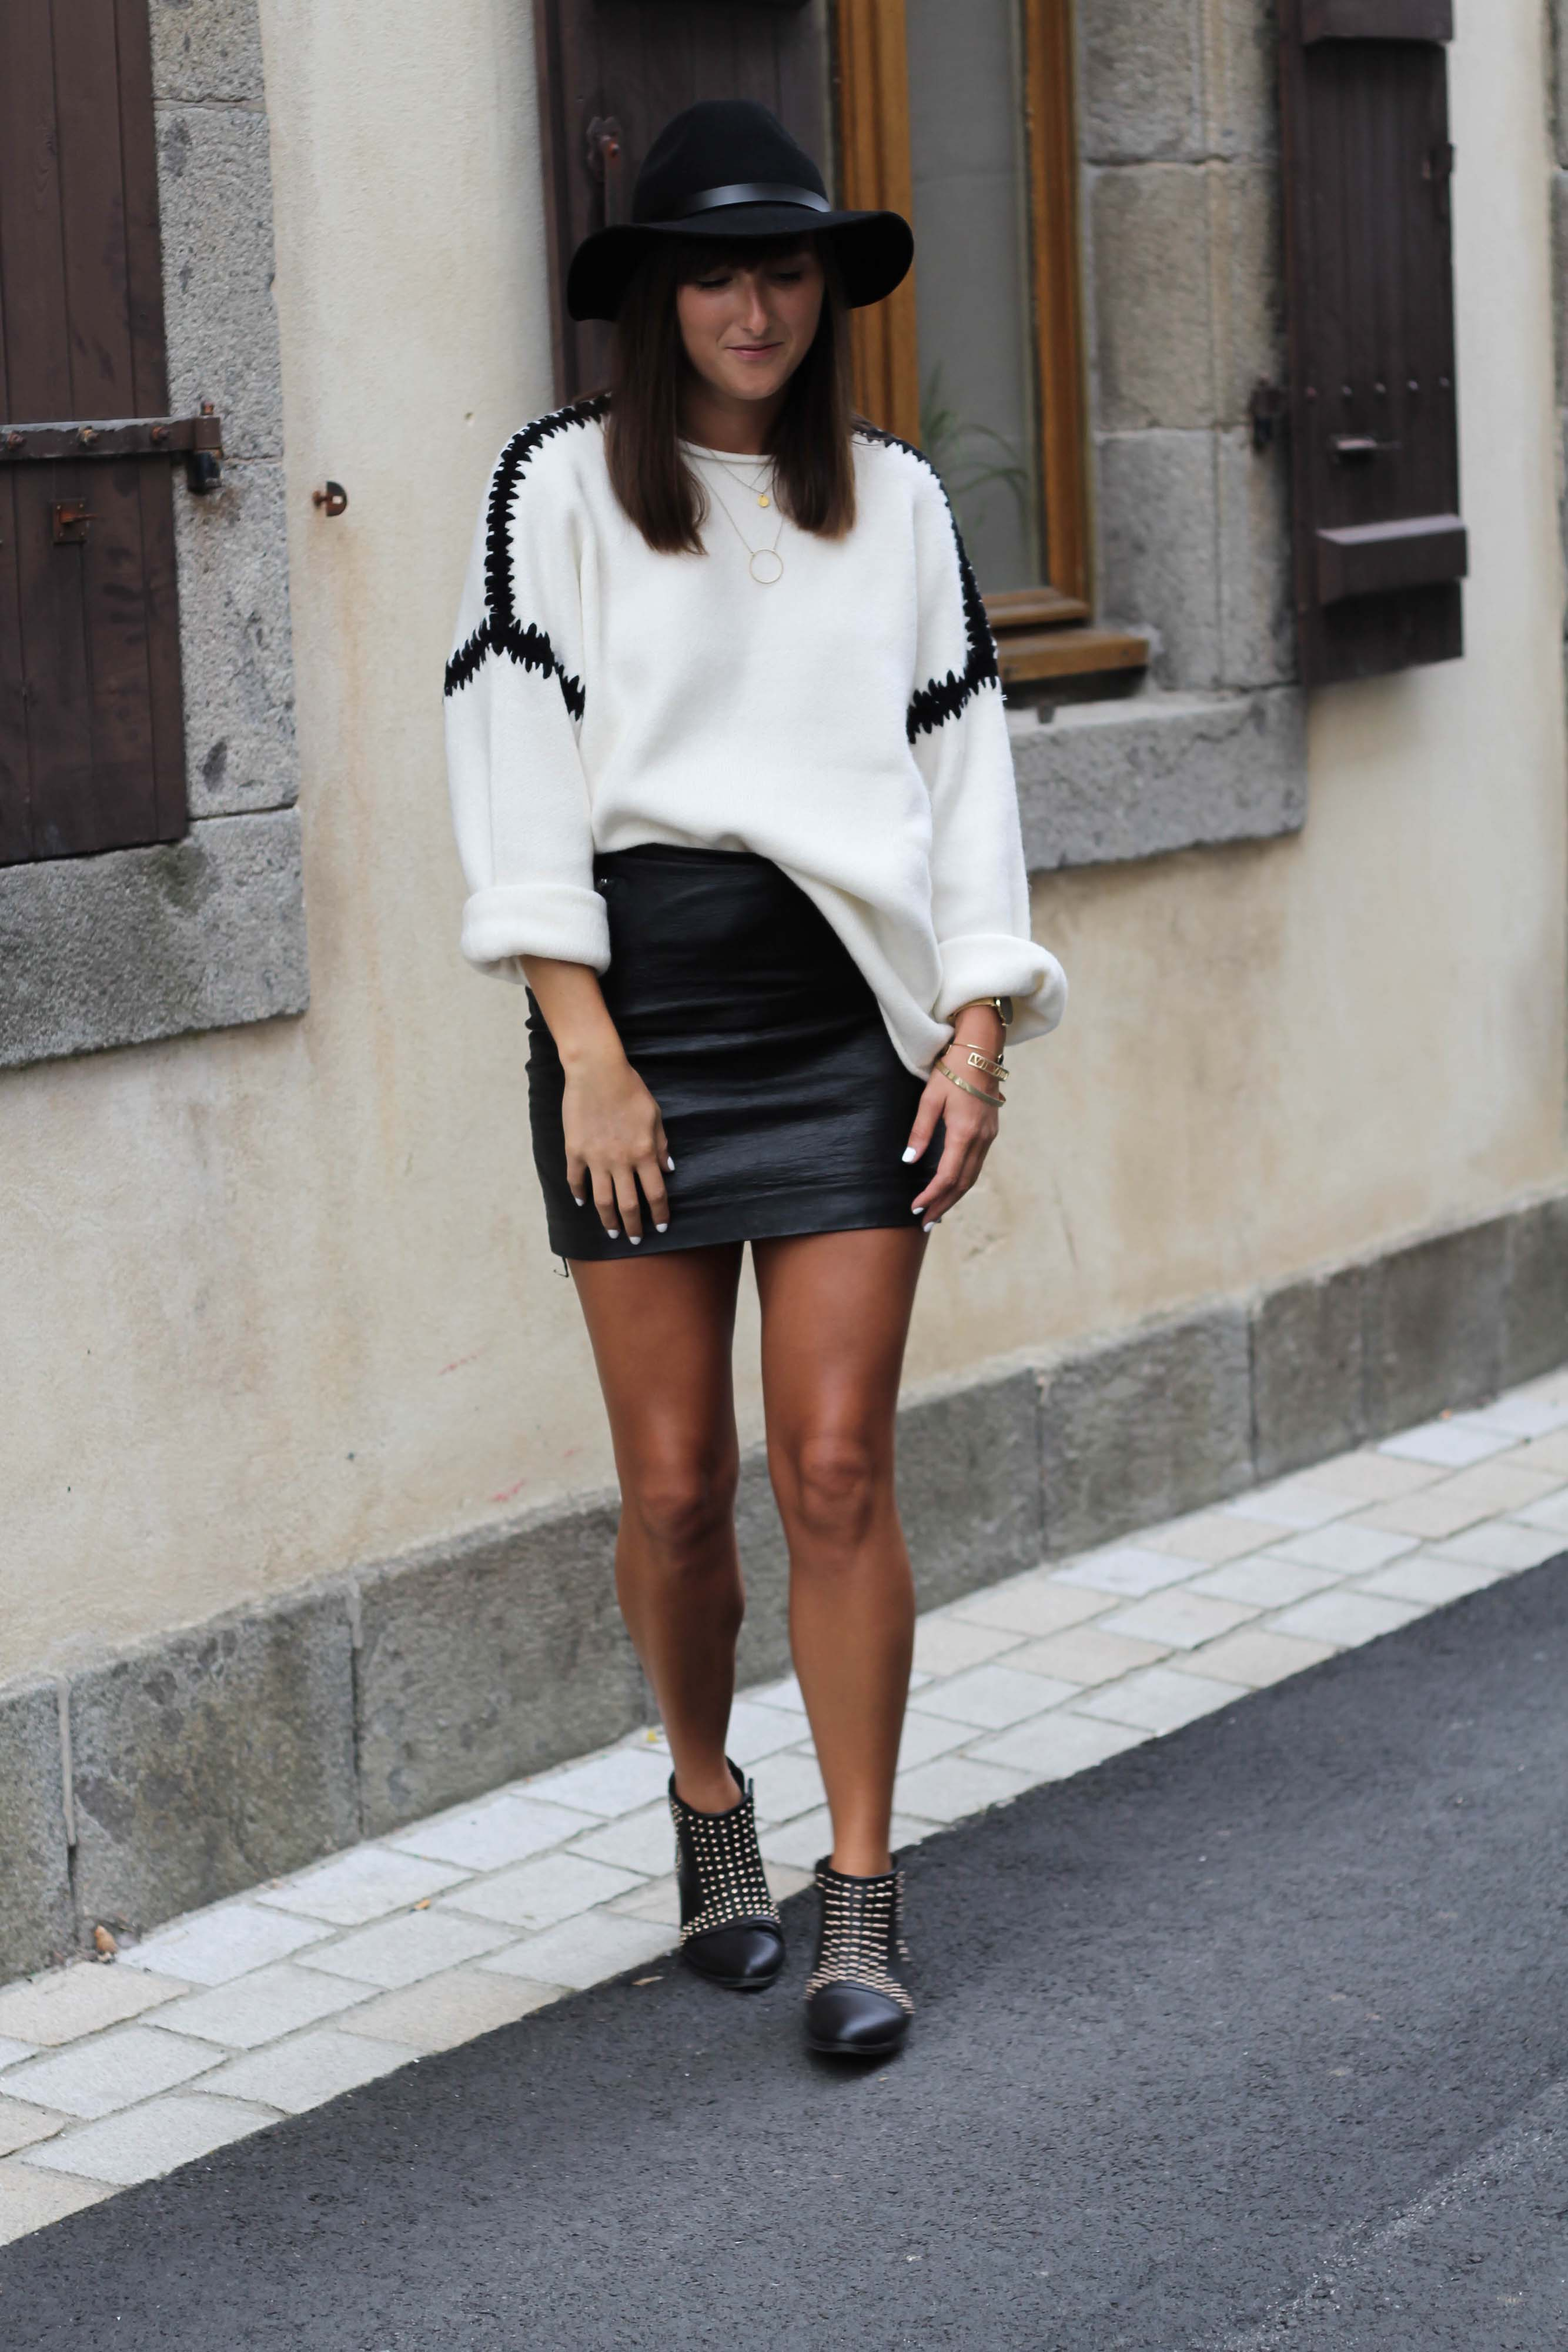 look-mode-zara-asos-autumn-simili-linstantflo-16-sur-27